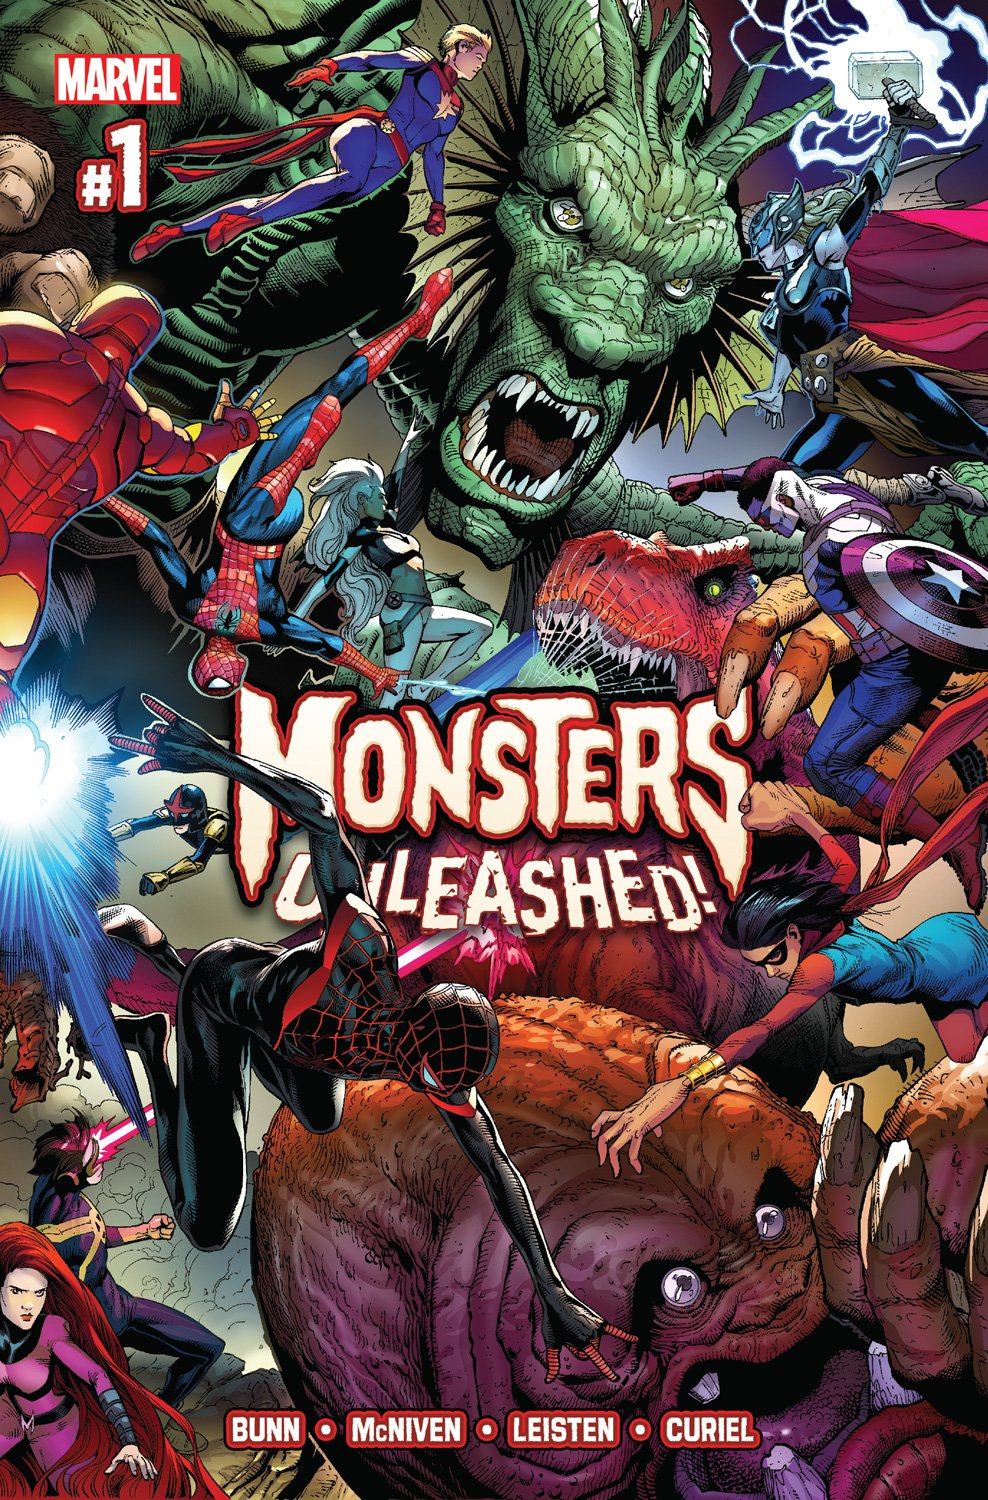 Marvel Offers Gargantuan Monsters Unleashed #1 Preview